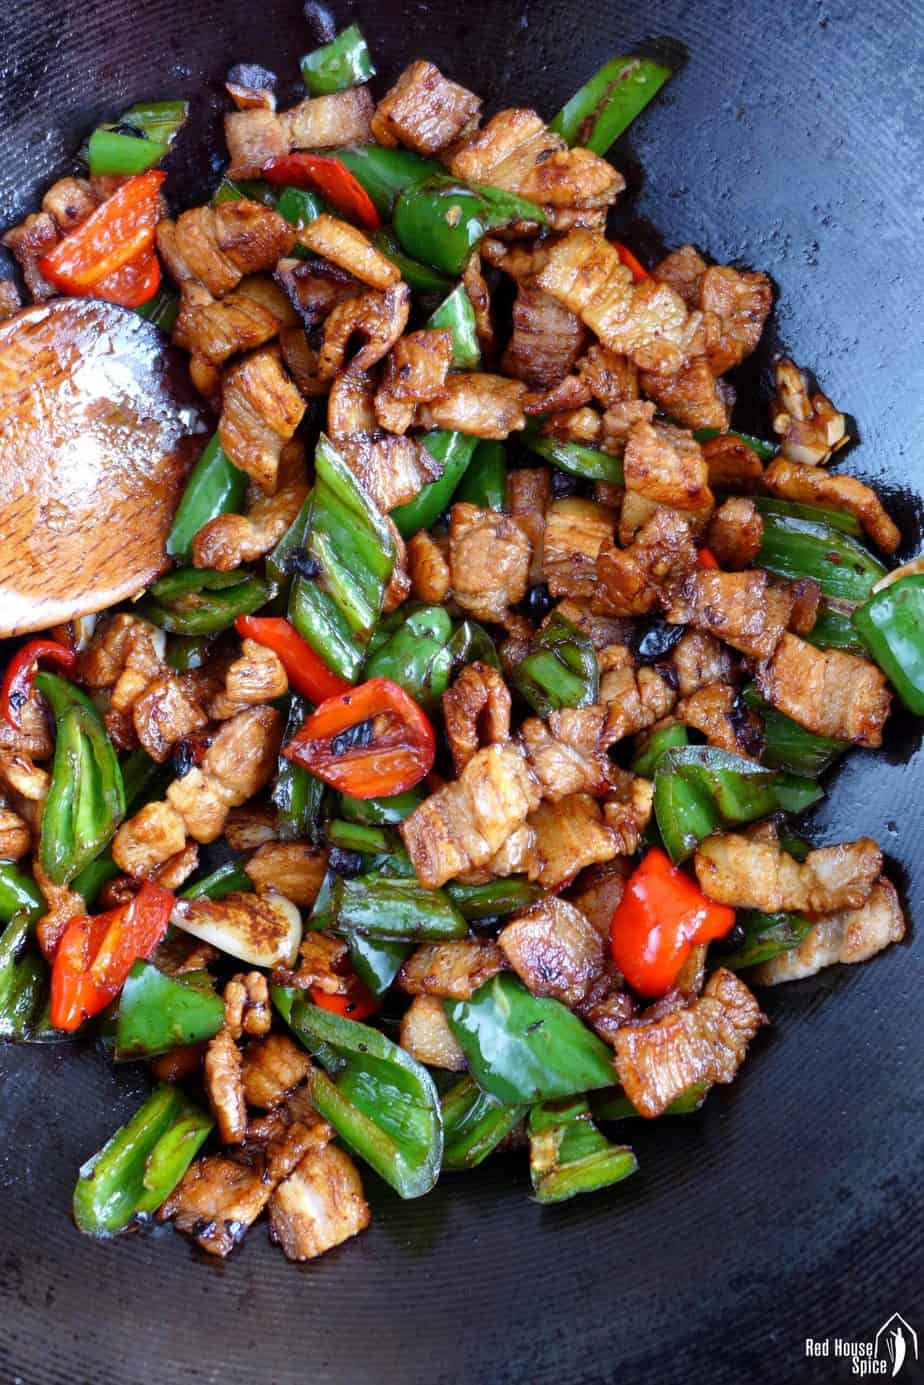 frying pork and chili in a wok